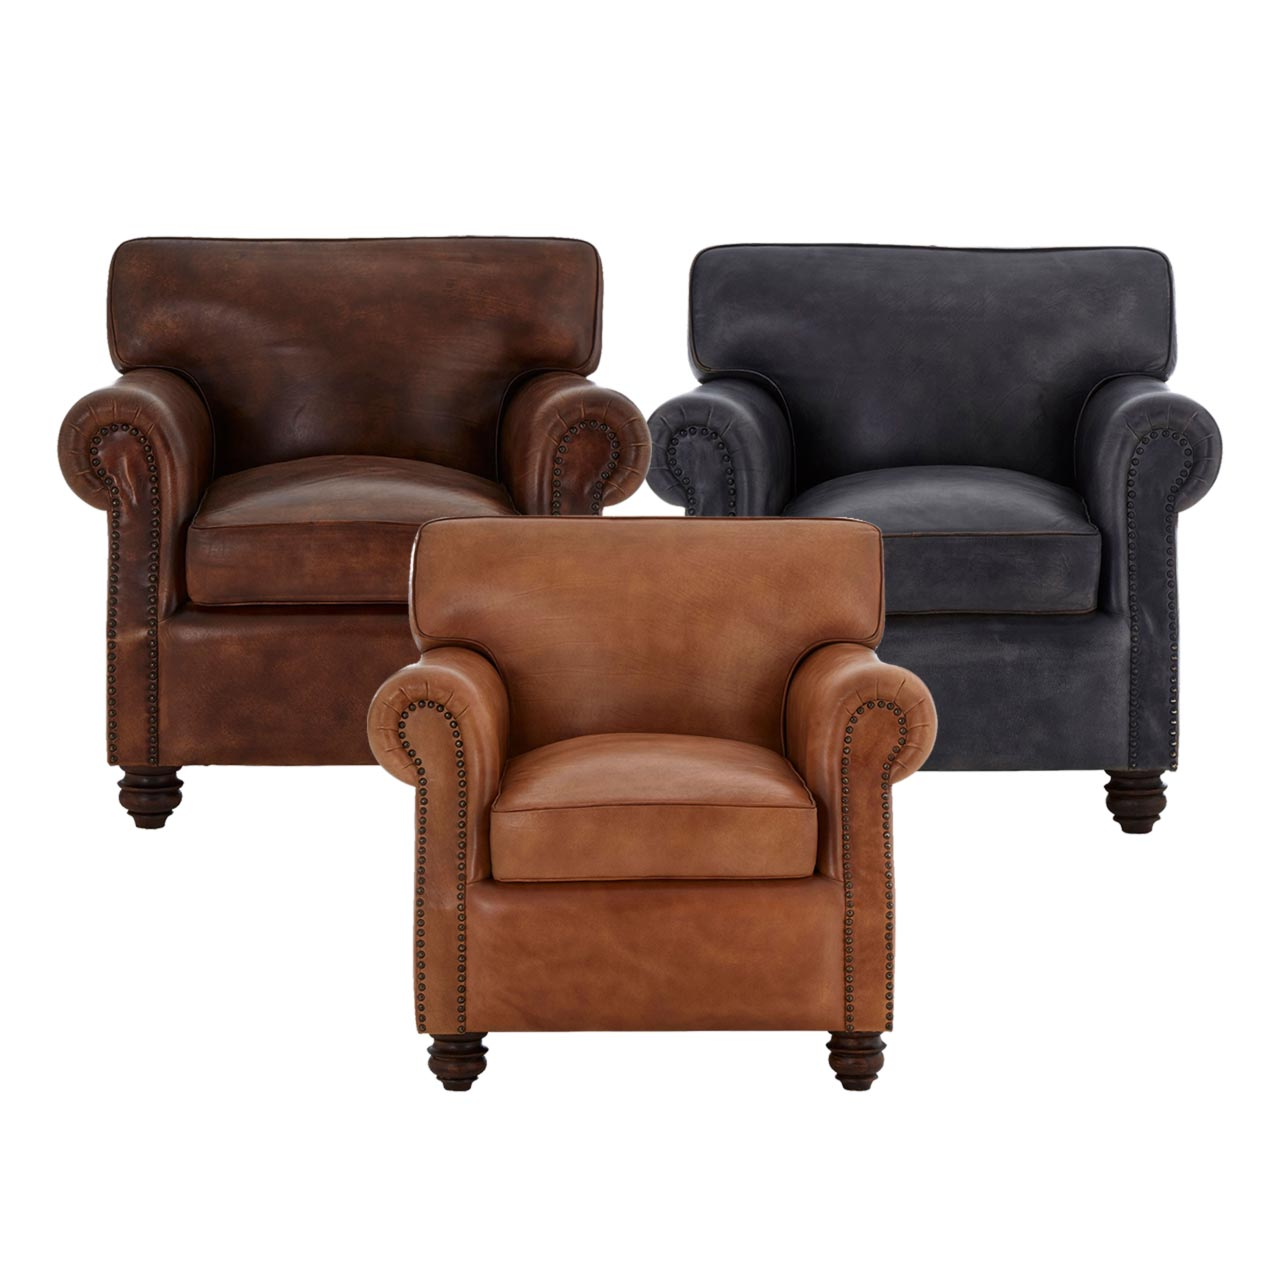 Vintage Leather Armchair Cl 40156 E2 Contract Lighting Uk